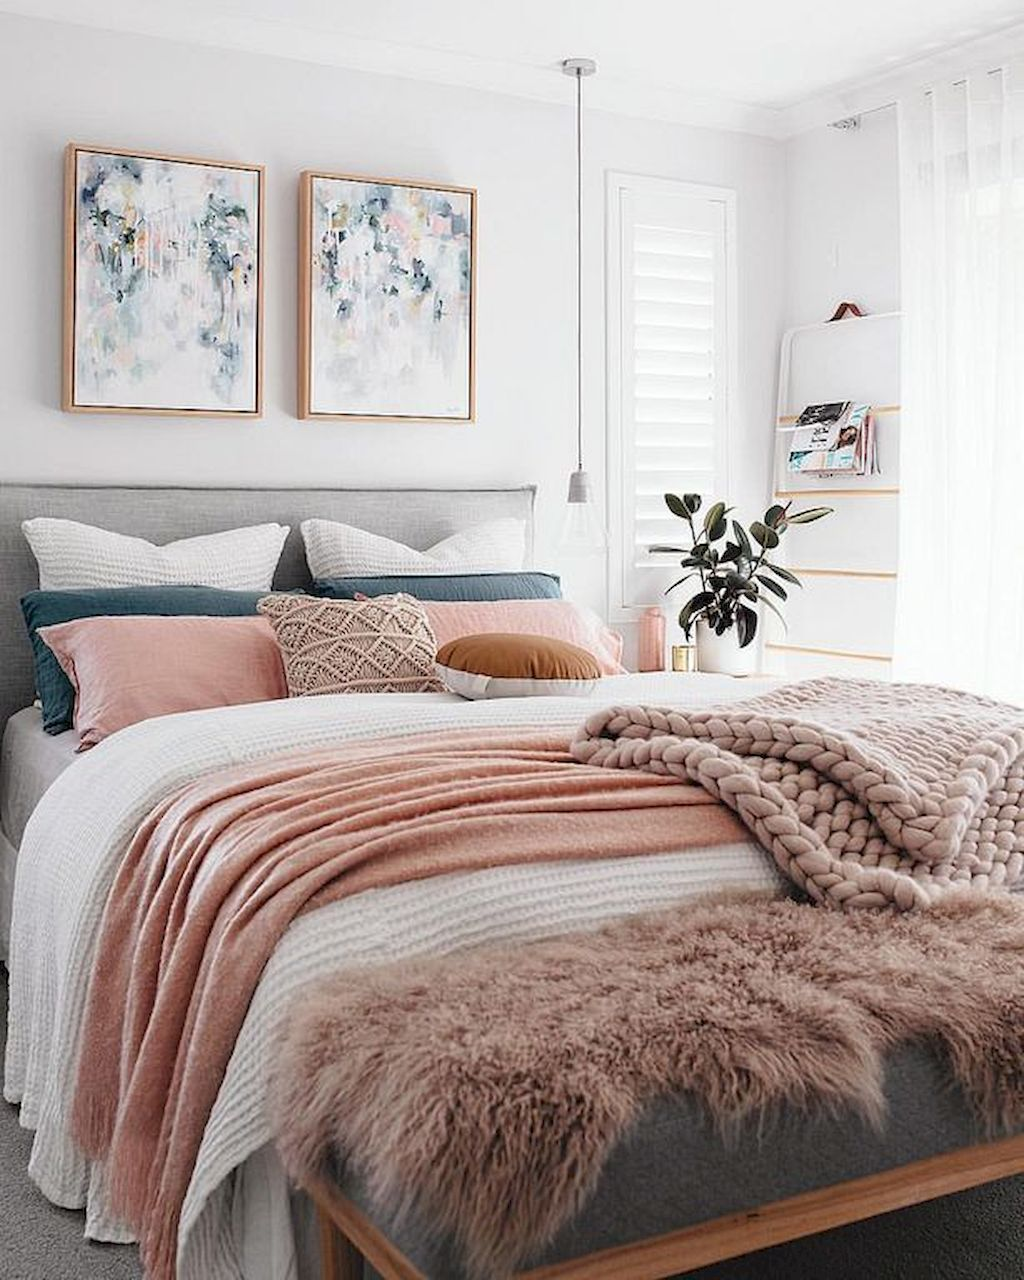 Pastel Bedroom Ideas 30 Small Master Bedroom Ideas Интерьер Bedroom Decor Small